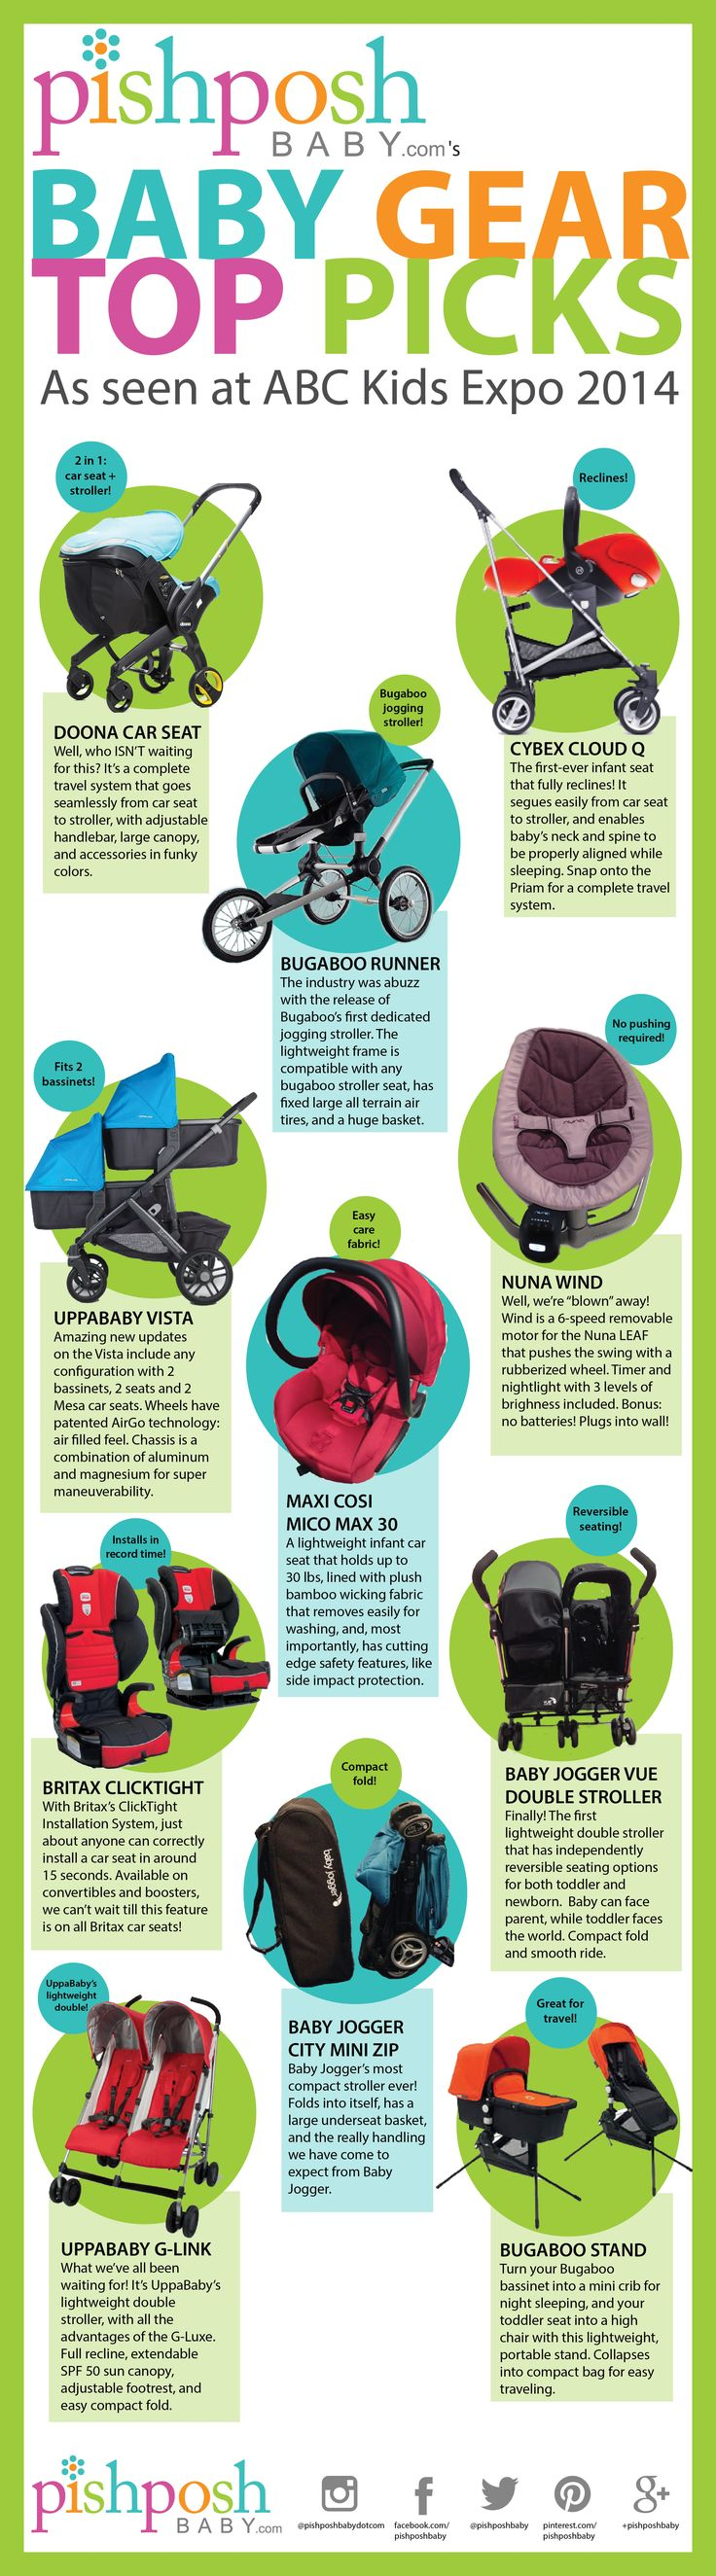 We're back from the #ABCkids14 show, and after seeing THOUSANDS of new baby products, we came up with this list! the name of the game this year was innovation! We're just sorry there wasn't room for all the rest of the cool things we saw.   http://site.pishposhbaby.com/blog/2014/09/11/baby-gear-top-picks-2015/